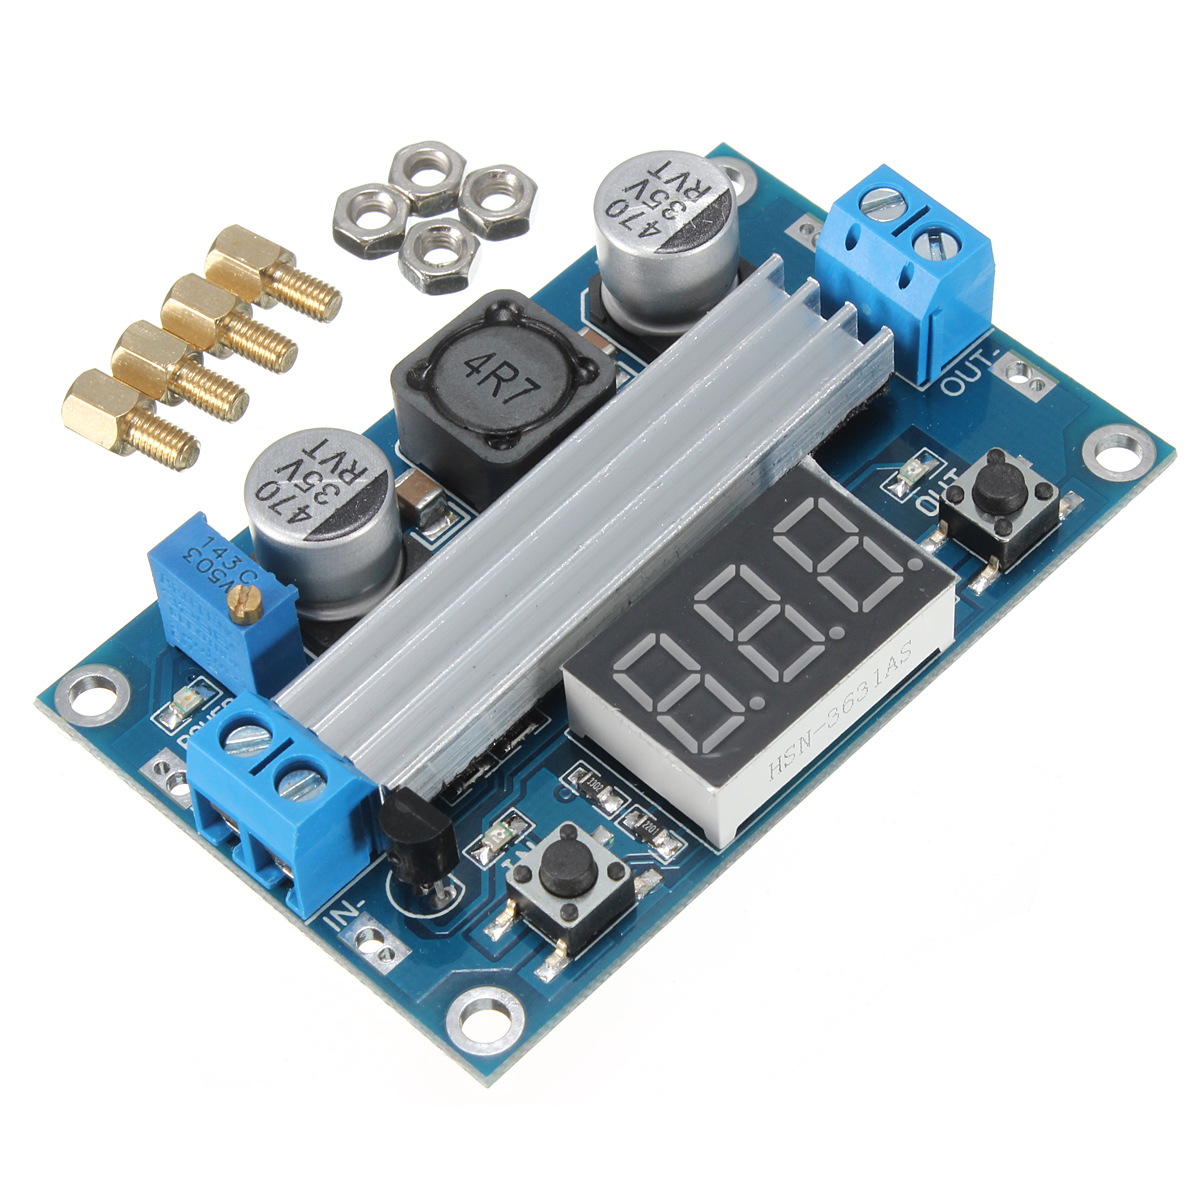 DC-DC Adjustable Step Up Power Module 10 pcs lot dc dc buck converter step down voltage module 6v 12v 20v 24v adjustable power supply 7 40v to 1 2 35v 8a 300w